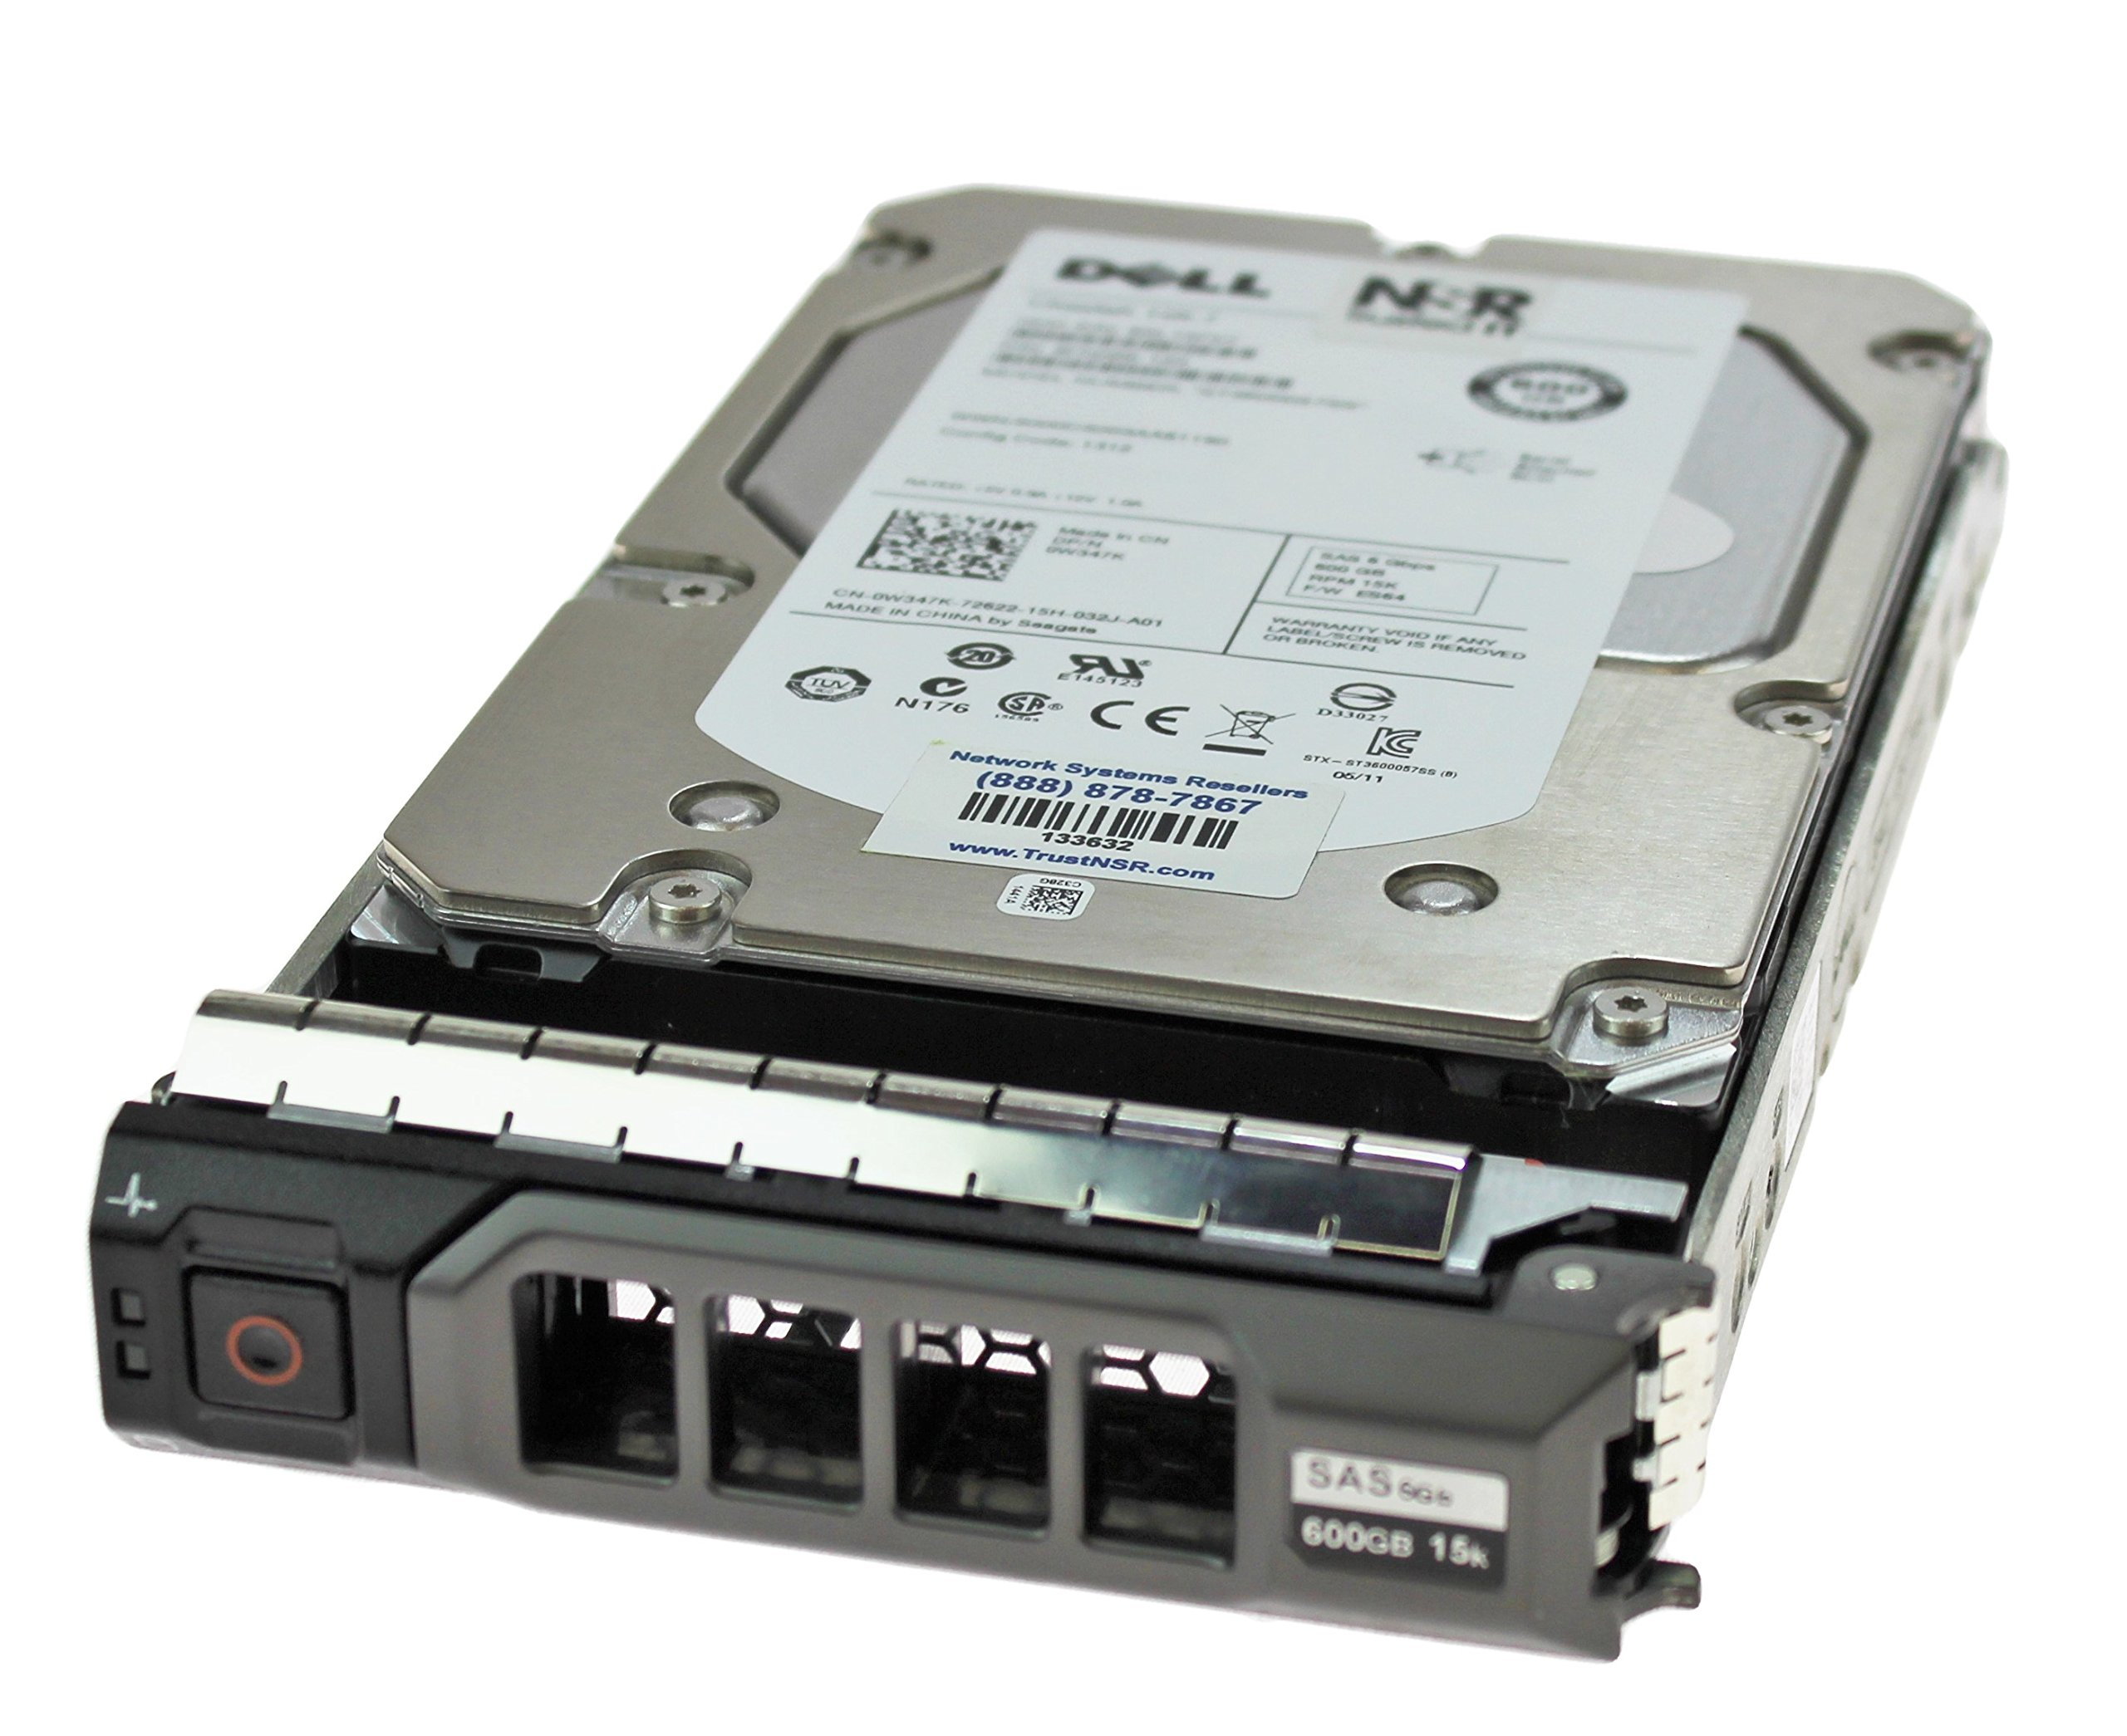 Dell W347K 600GB 15K 16MB 6.0GBps 3.5'' Enterprise Class SAS Hard Drive in Poweredge R Series Tray by DELL